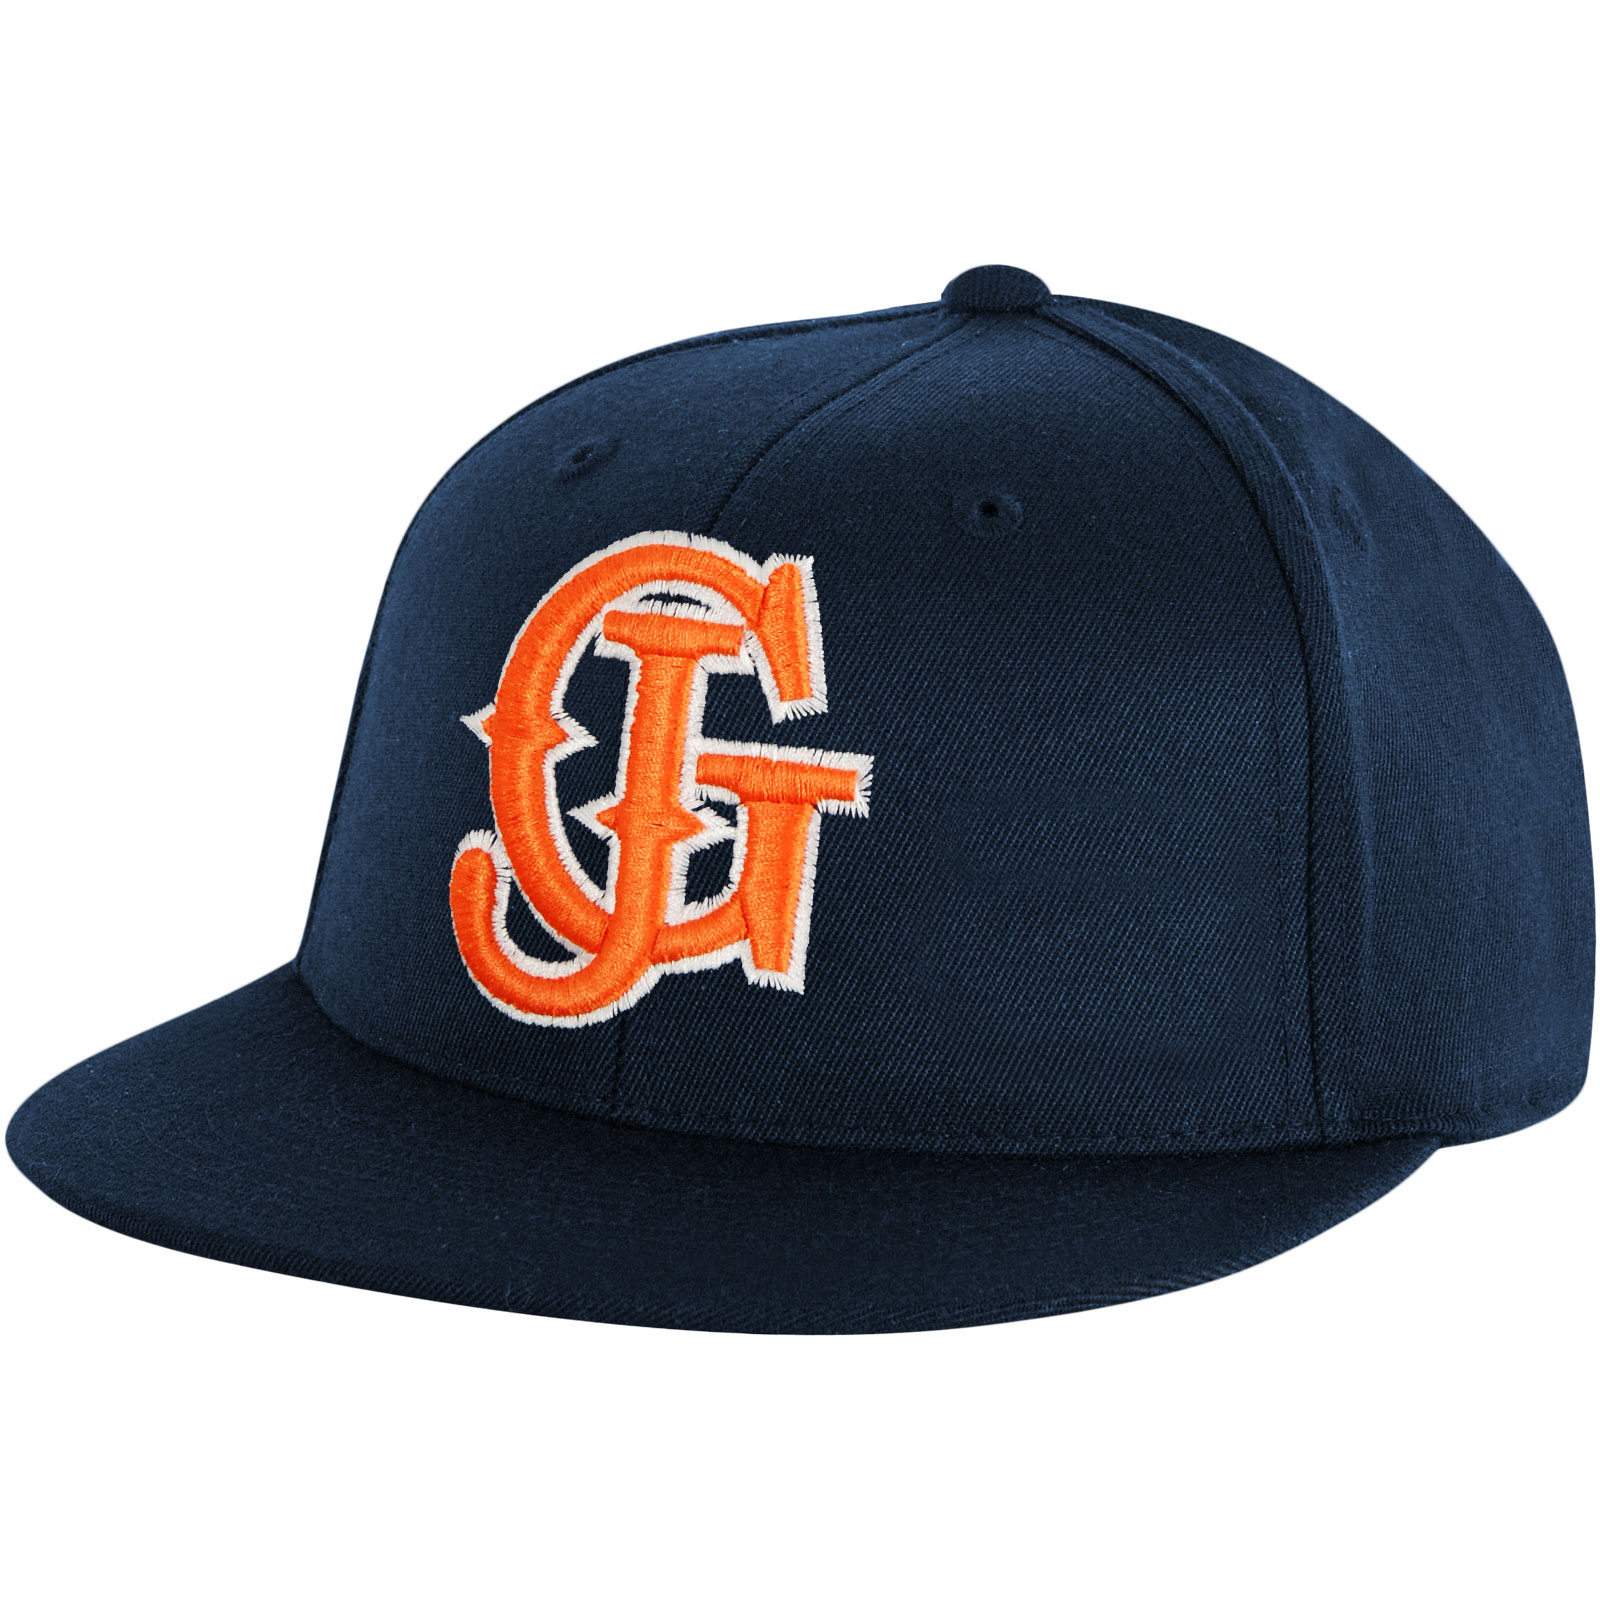 Glassjaw Men's  Blue With White And Orange Baseball Cap Blue